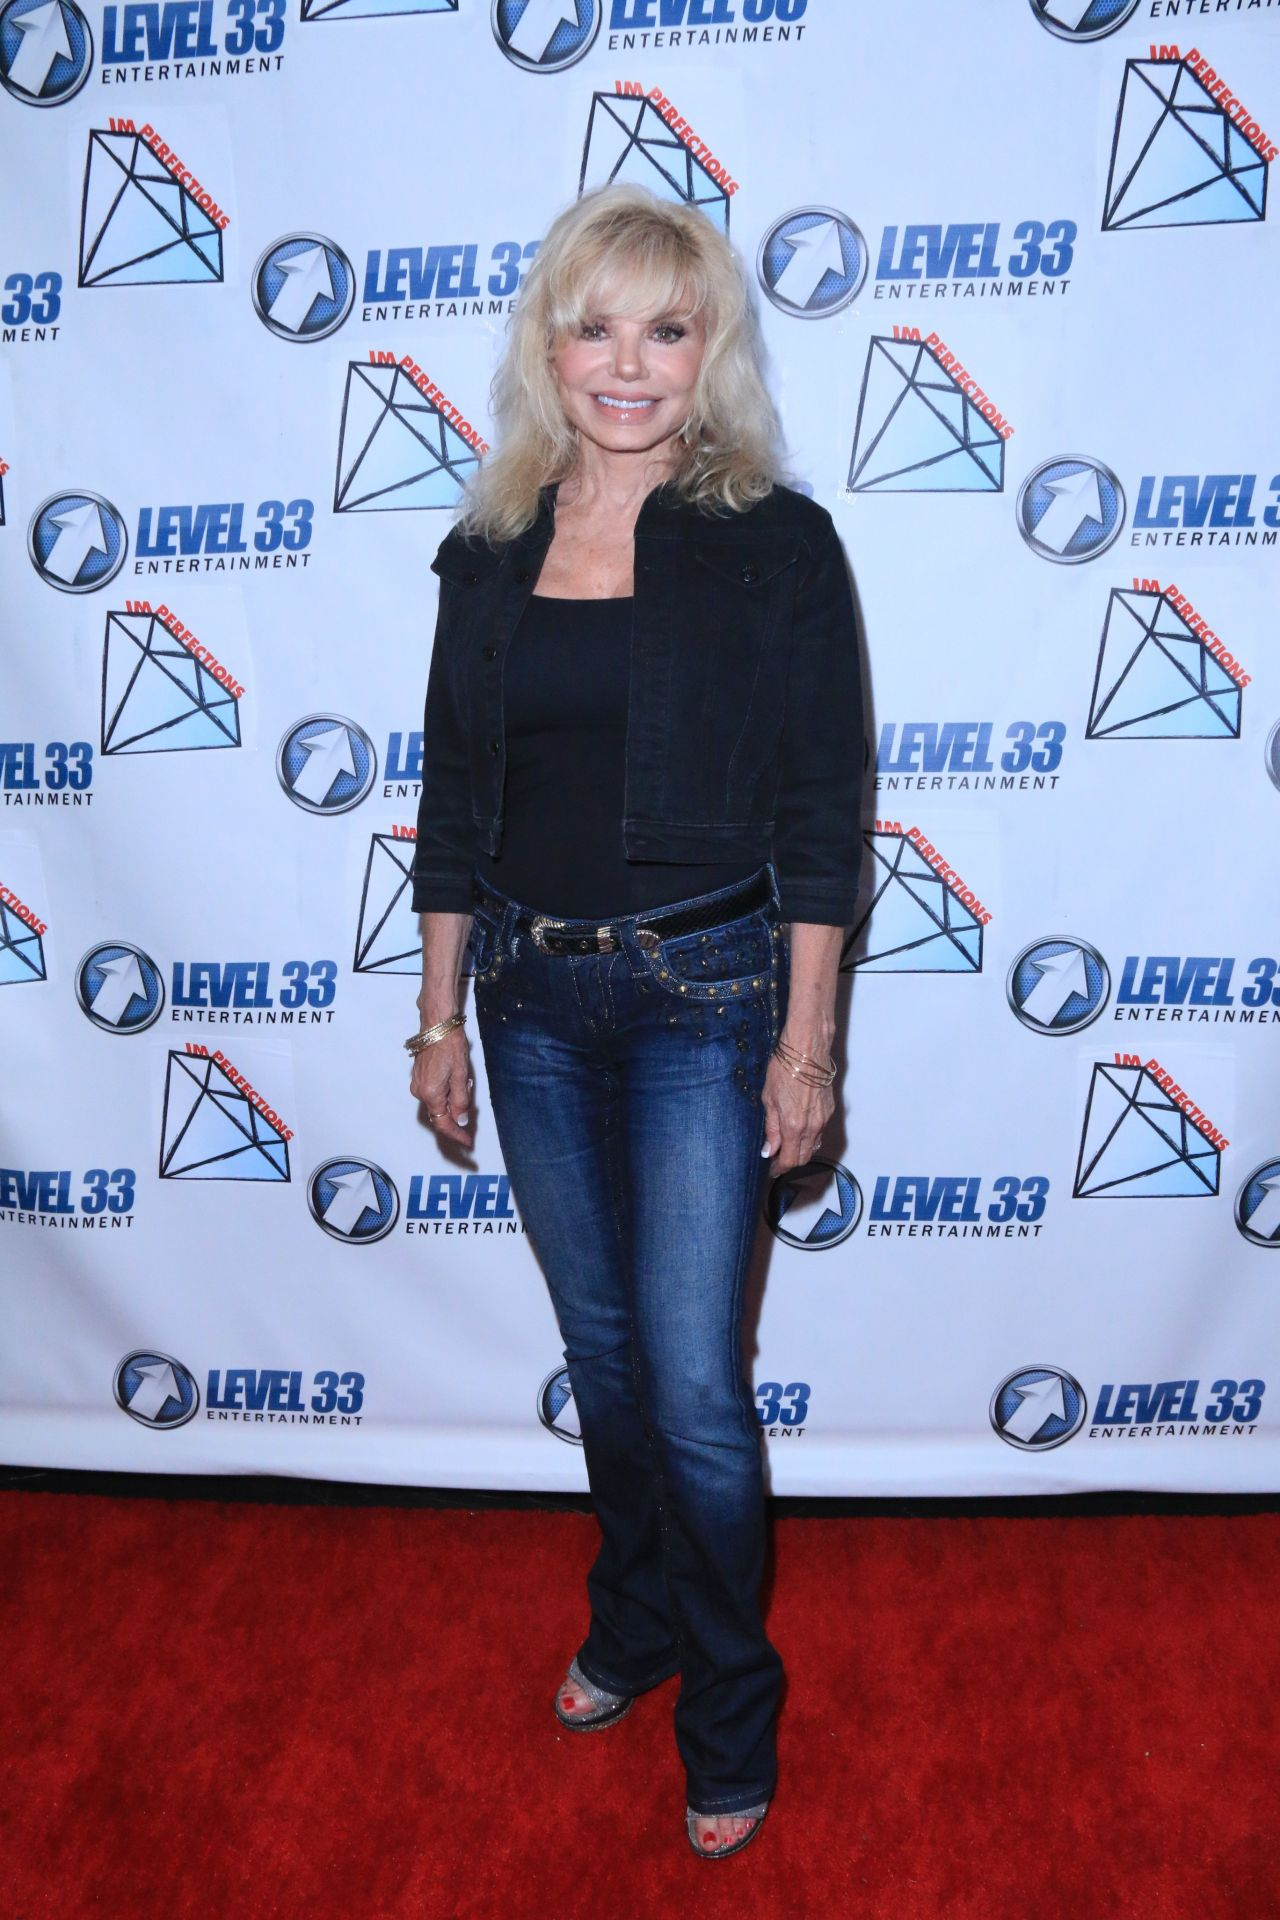 Loni Anderson Imperfections Premiere In Santa Monica